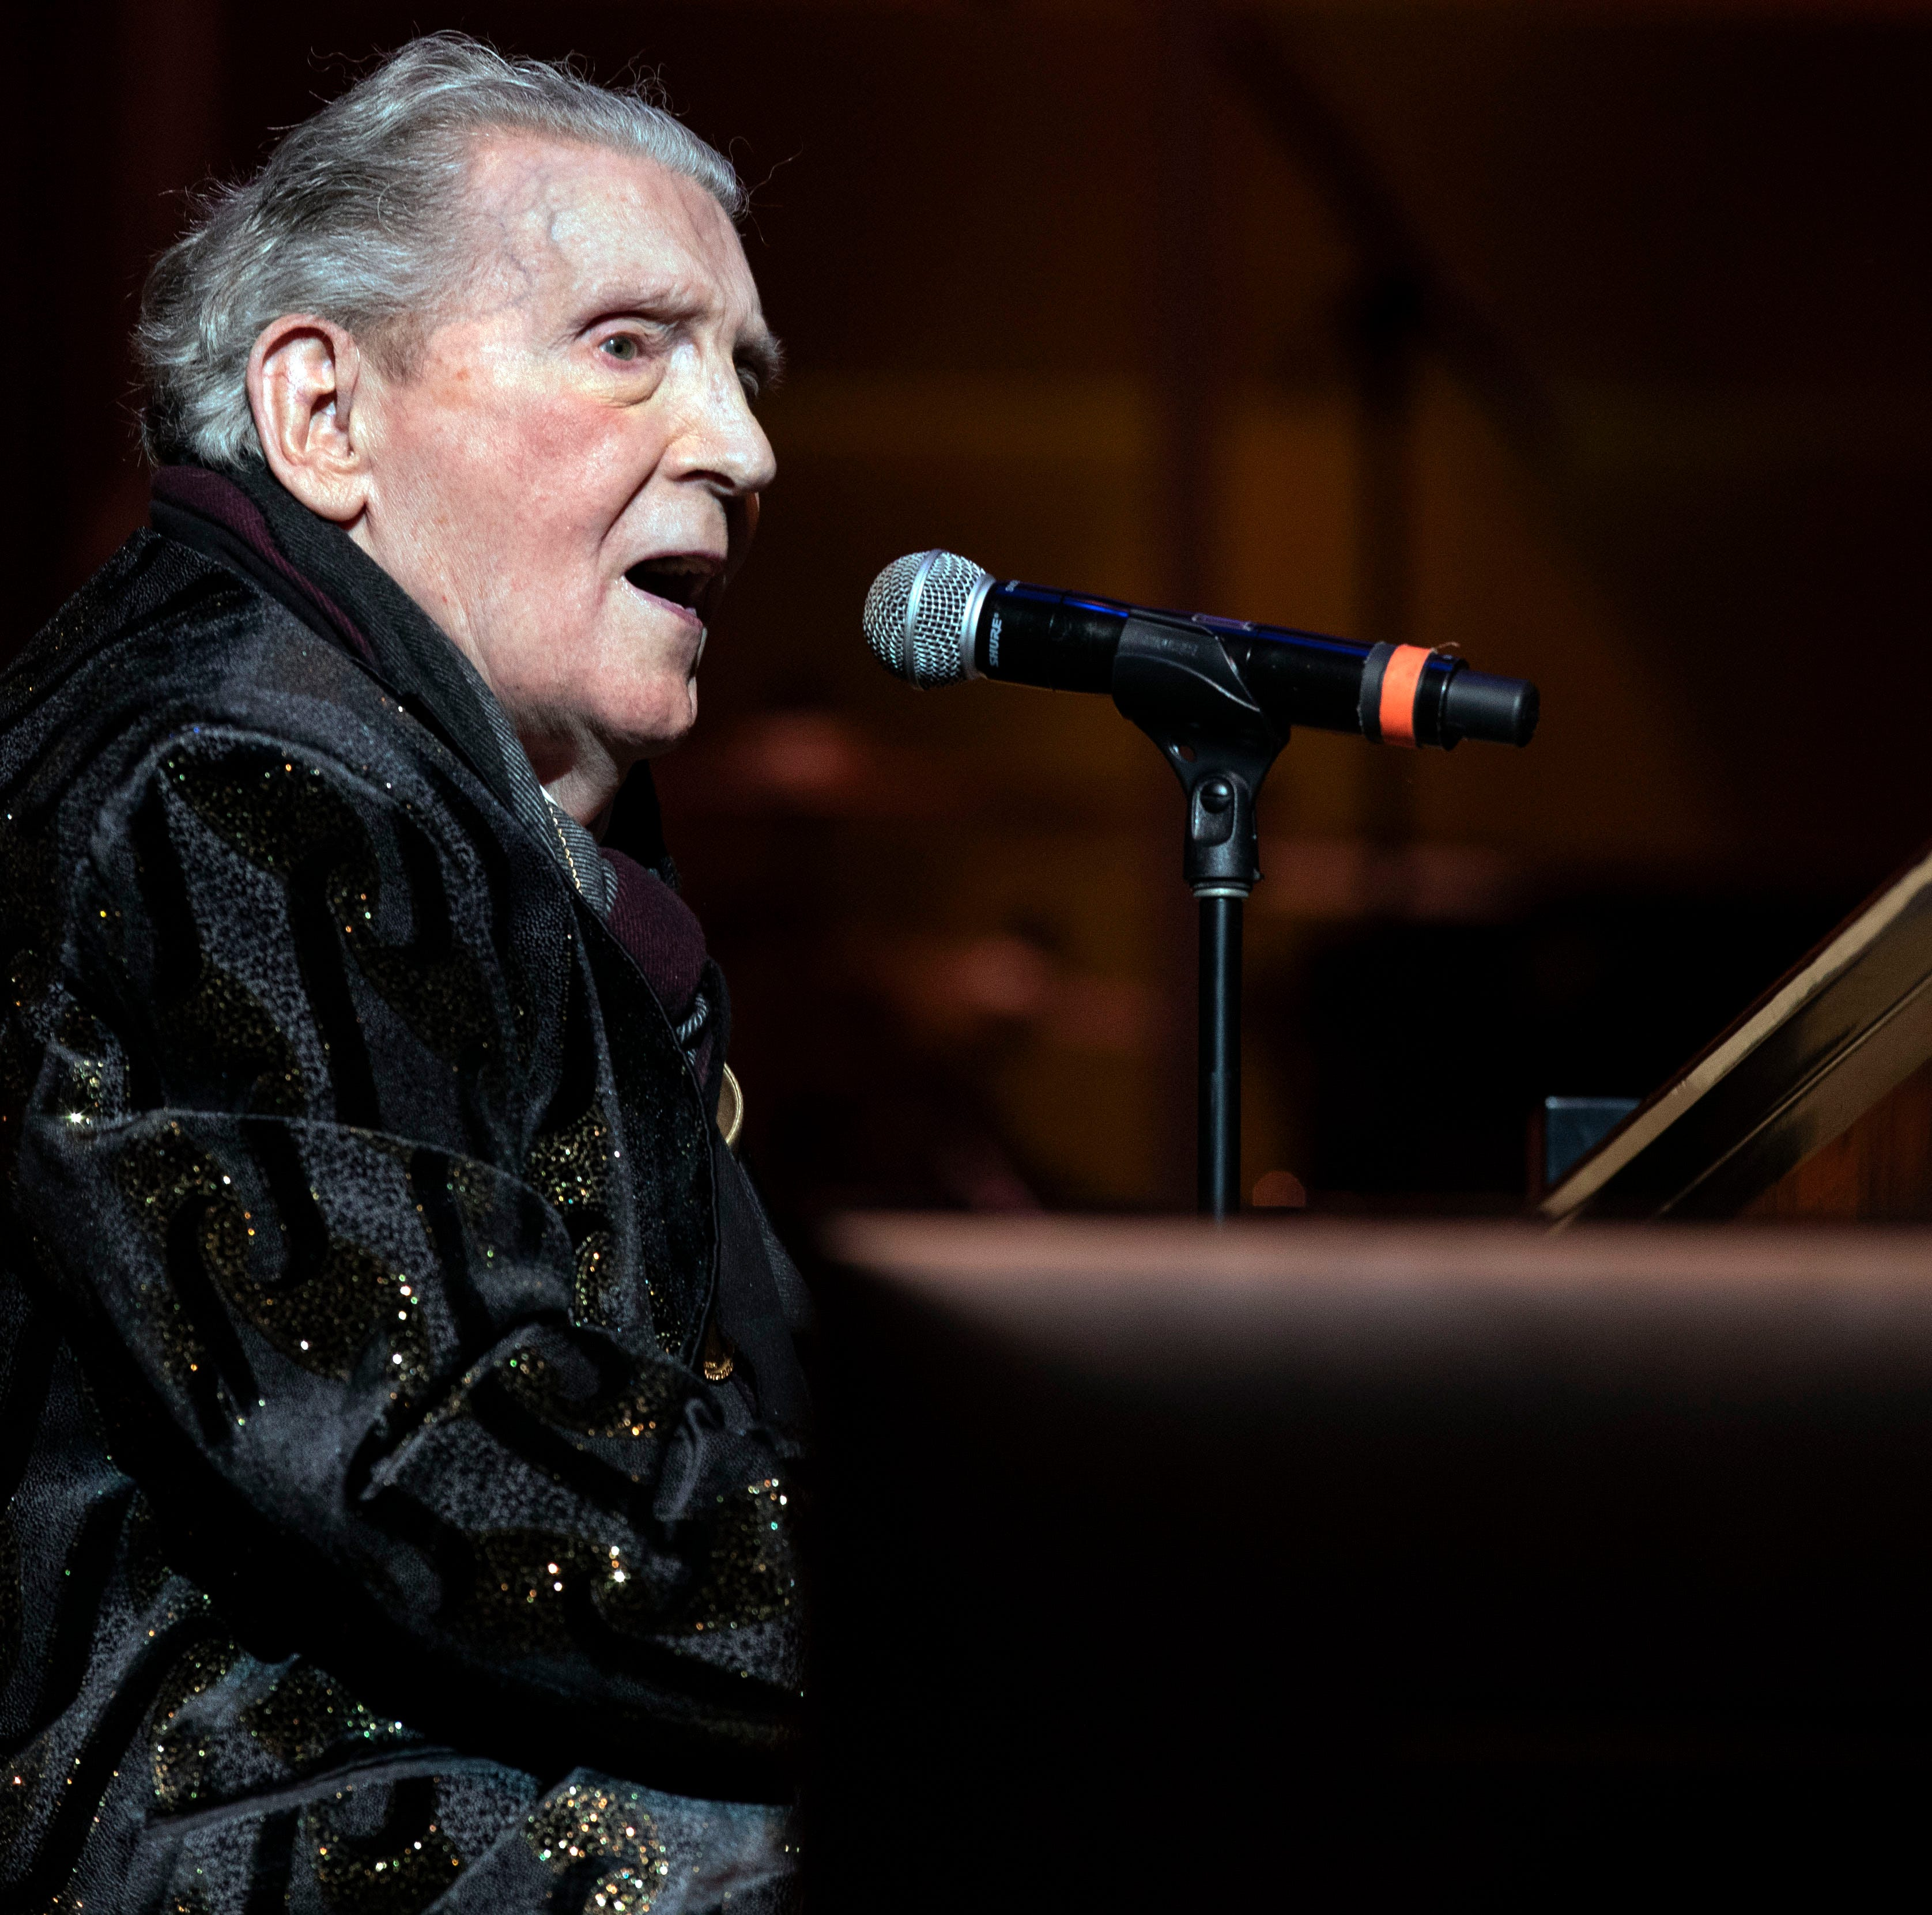 Rock legend Jerry Lee Lewis recovering from stroke, but will cancel several upcoming shows